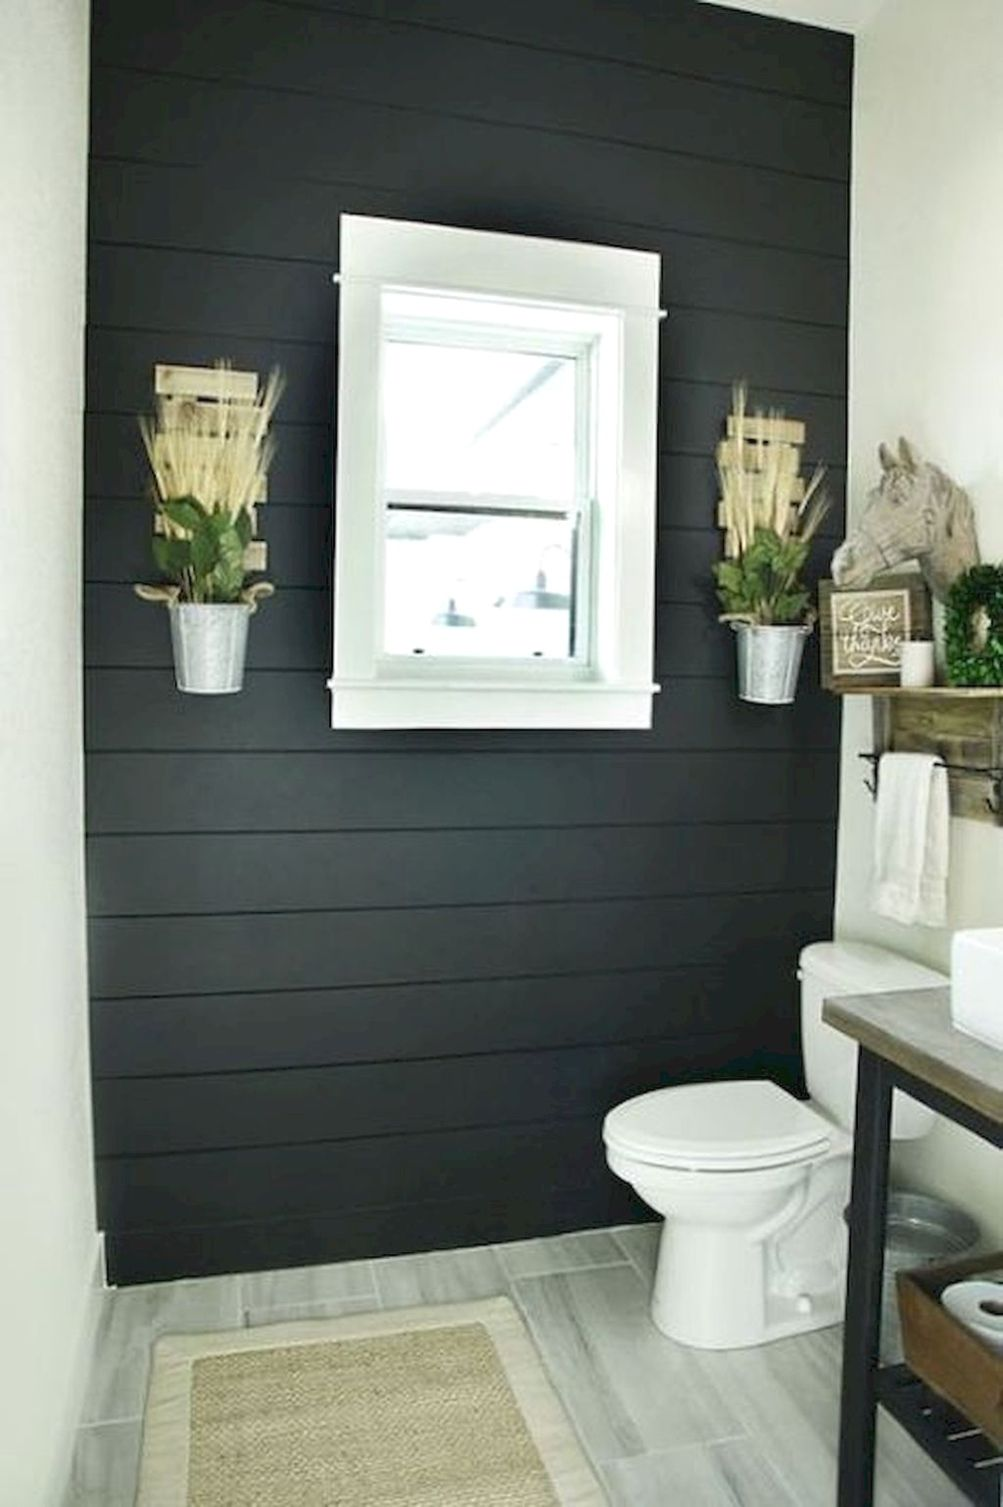 Bathroom Walls Ideas Remodeling Bathroom Ideas Older Homes My Castle Shiplap